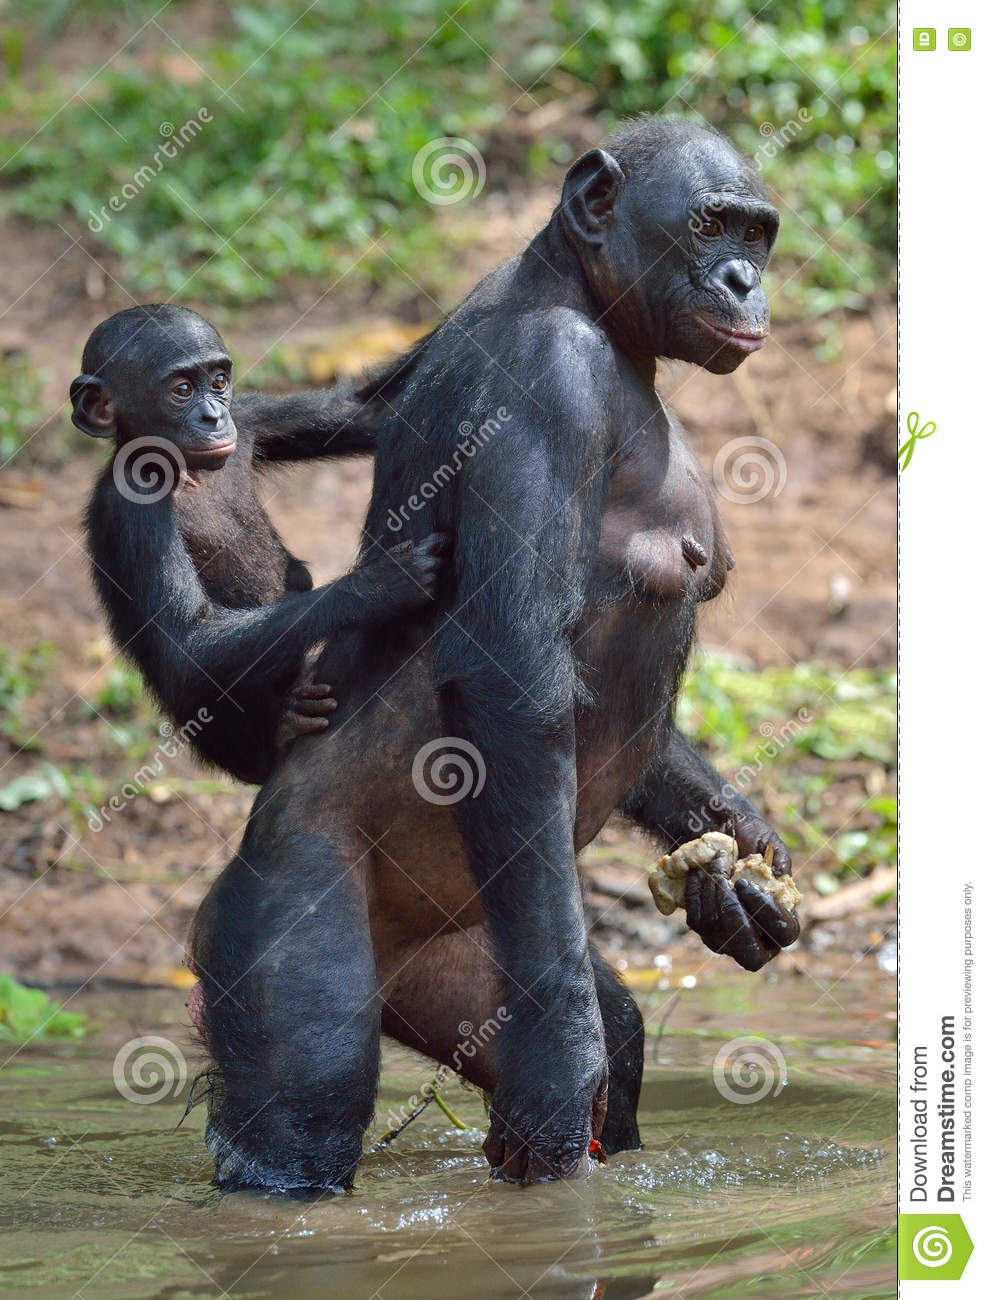 Bonobo Standing bonobo standing on her legs in water with a cub on a ...